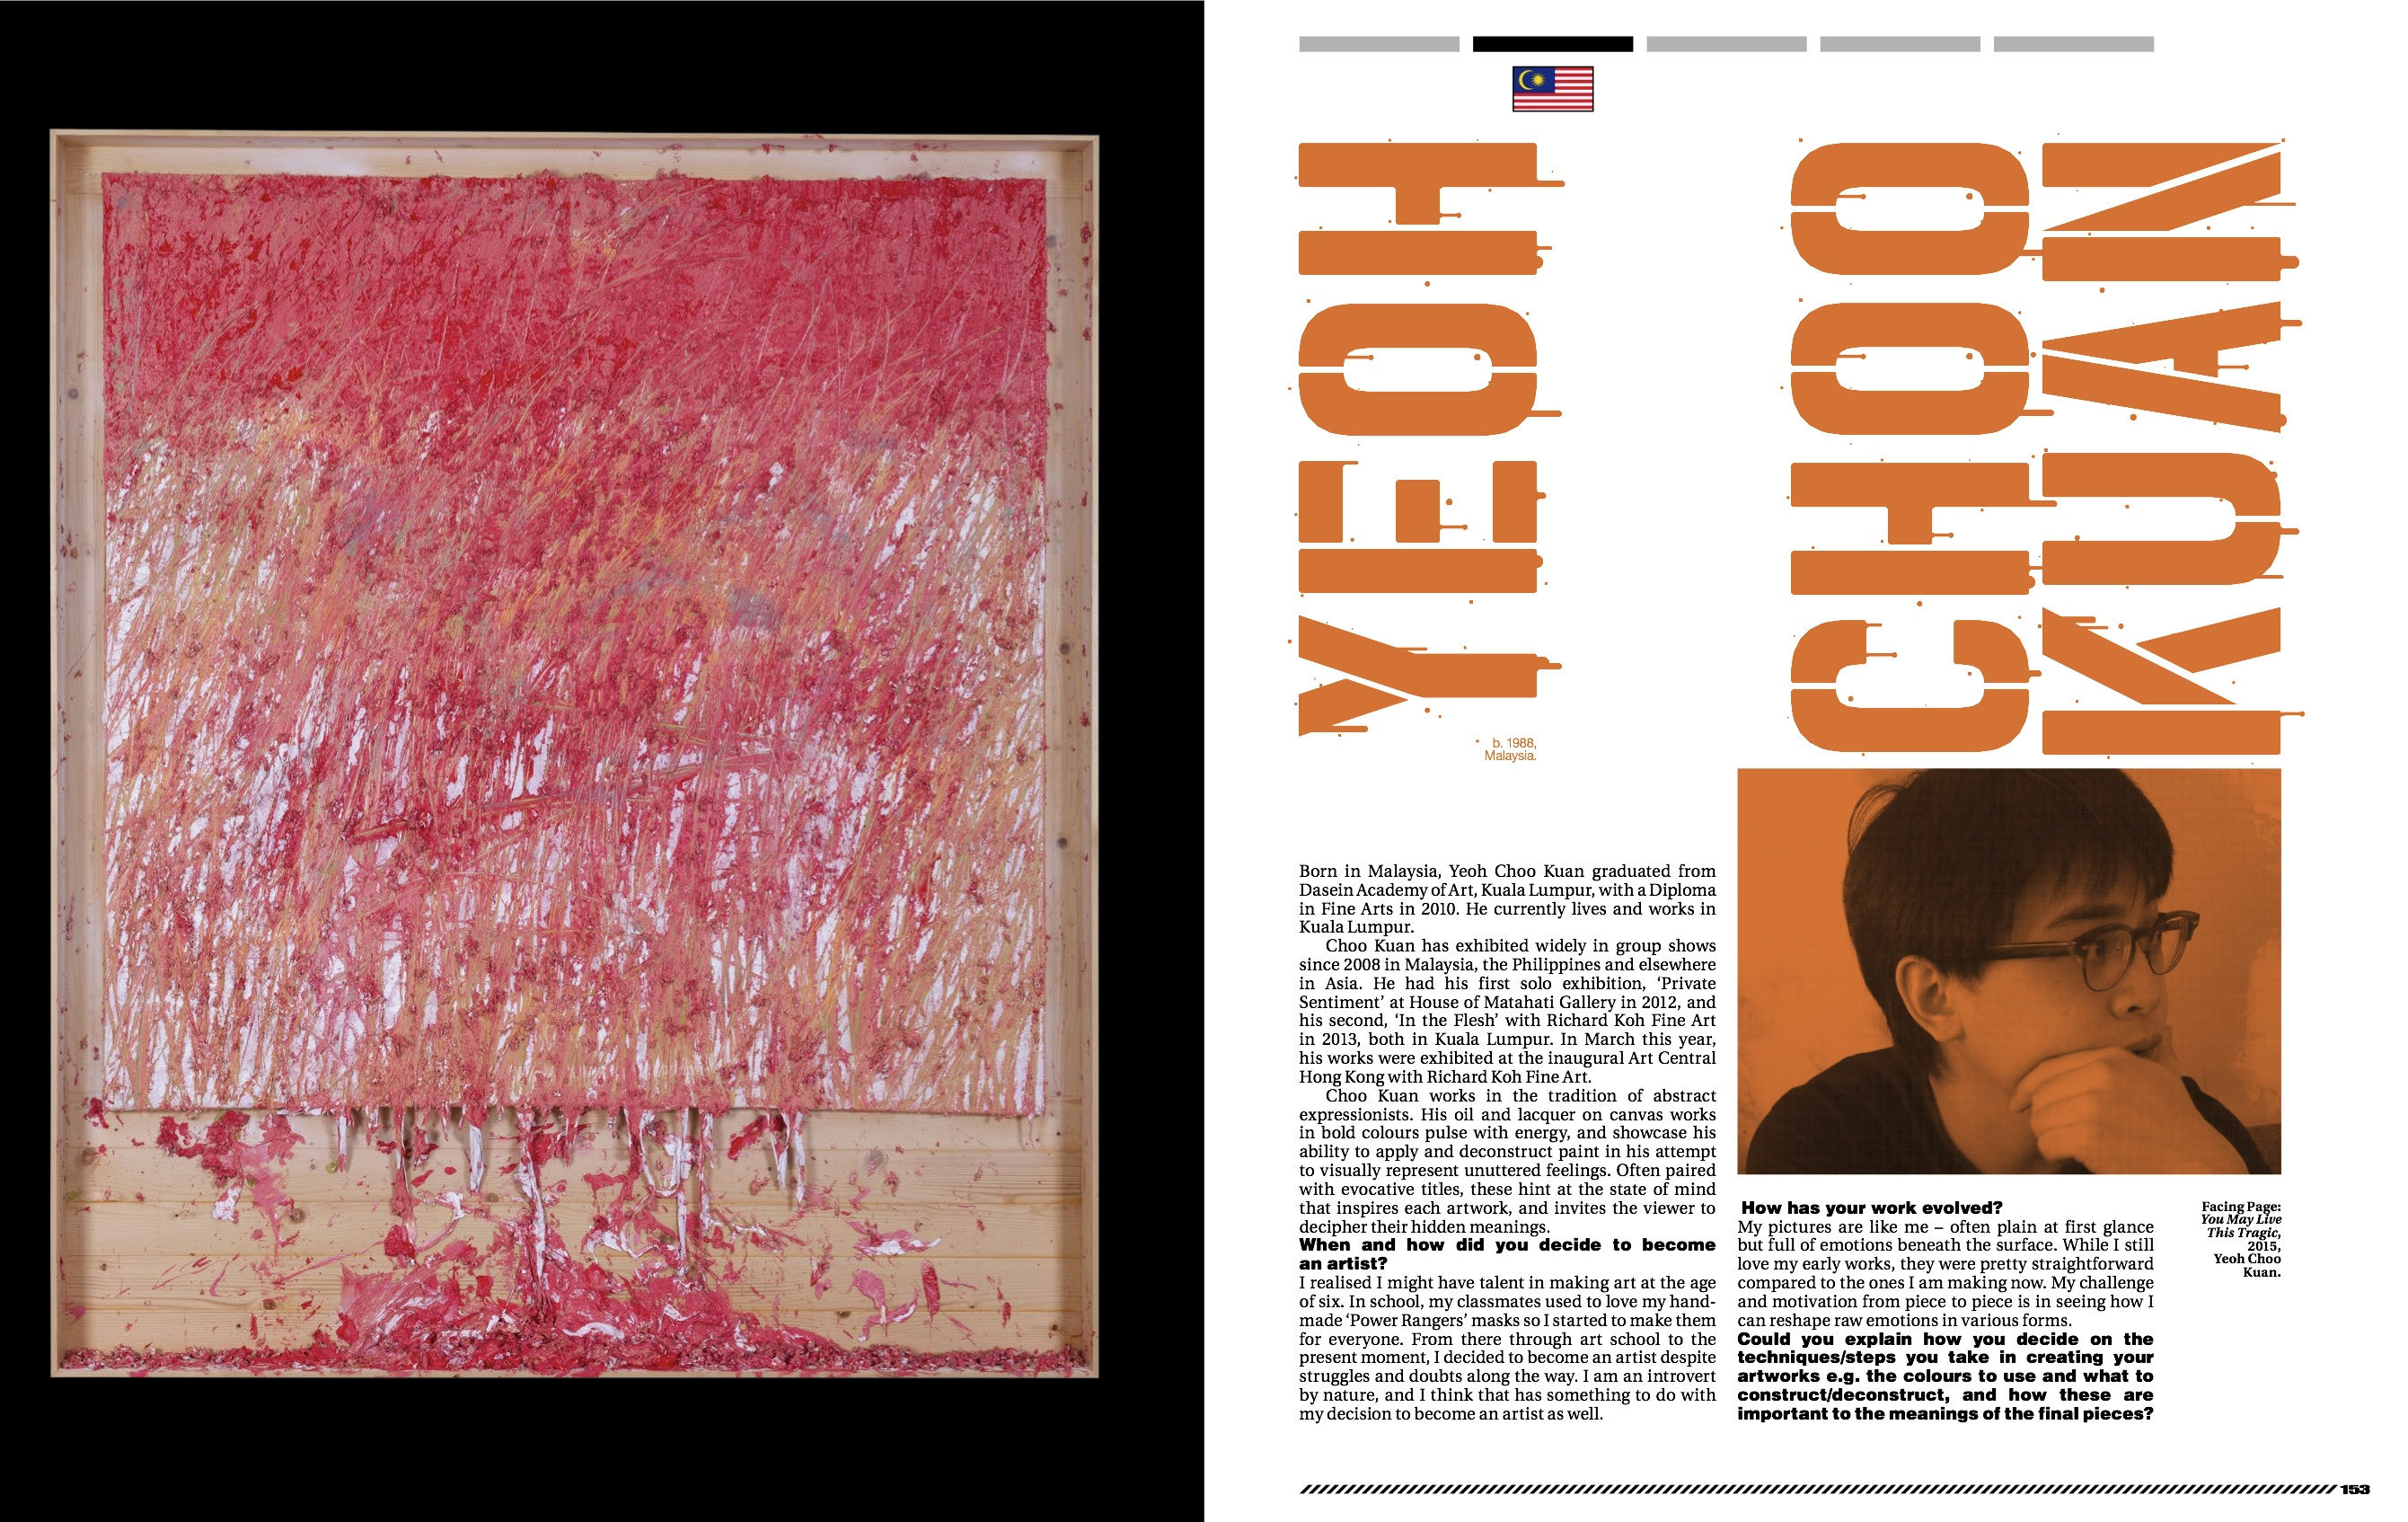 Yeoh Choo Kuan featured in New Blood for Art Republik (Issue No. 8)